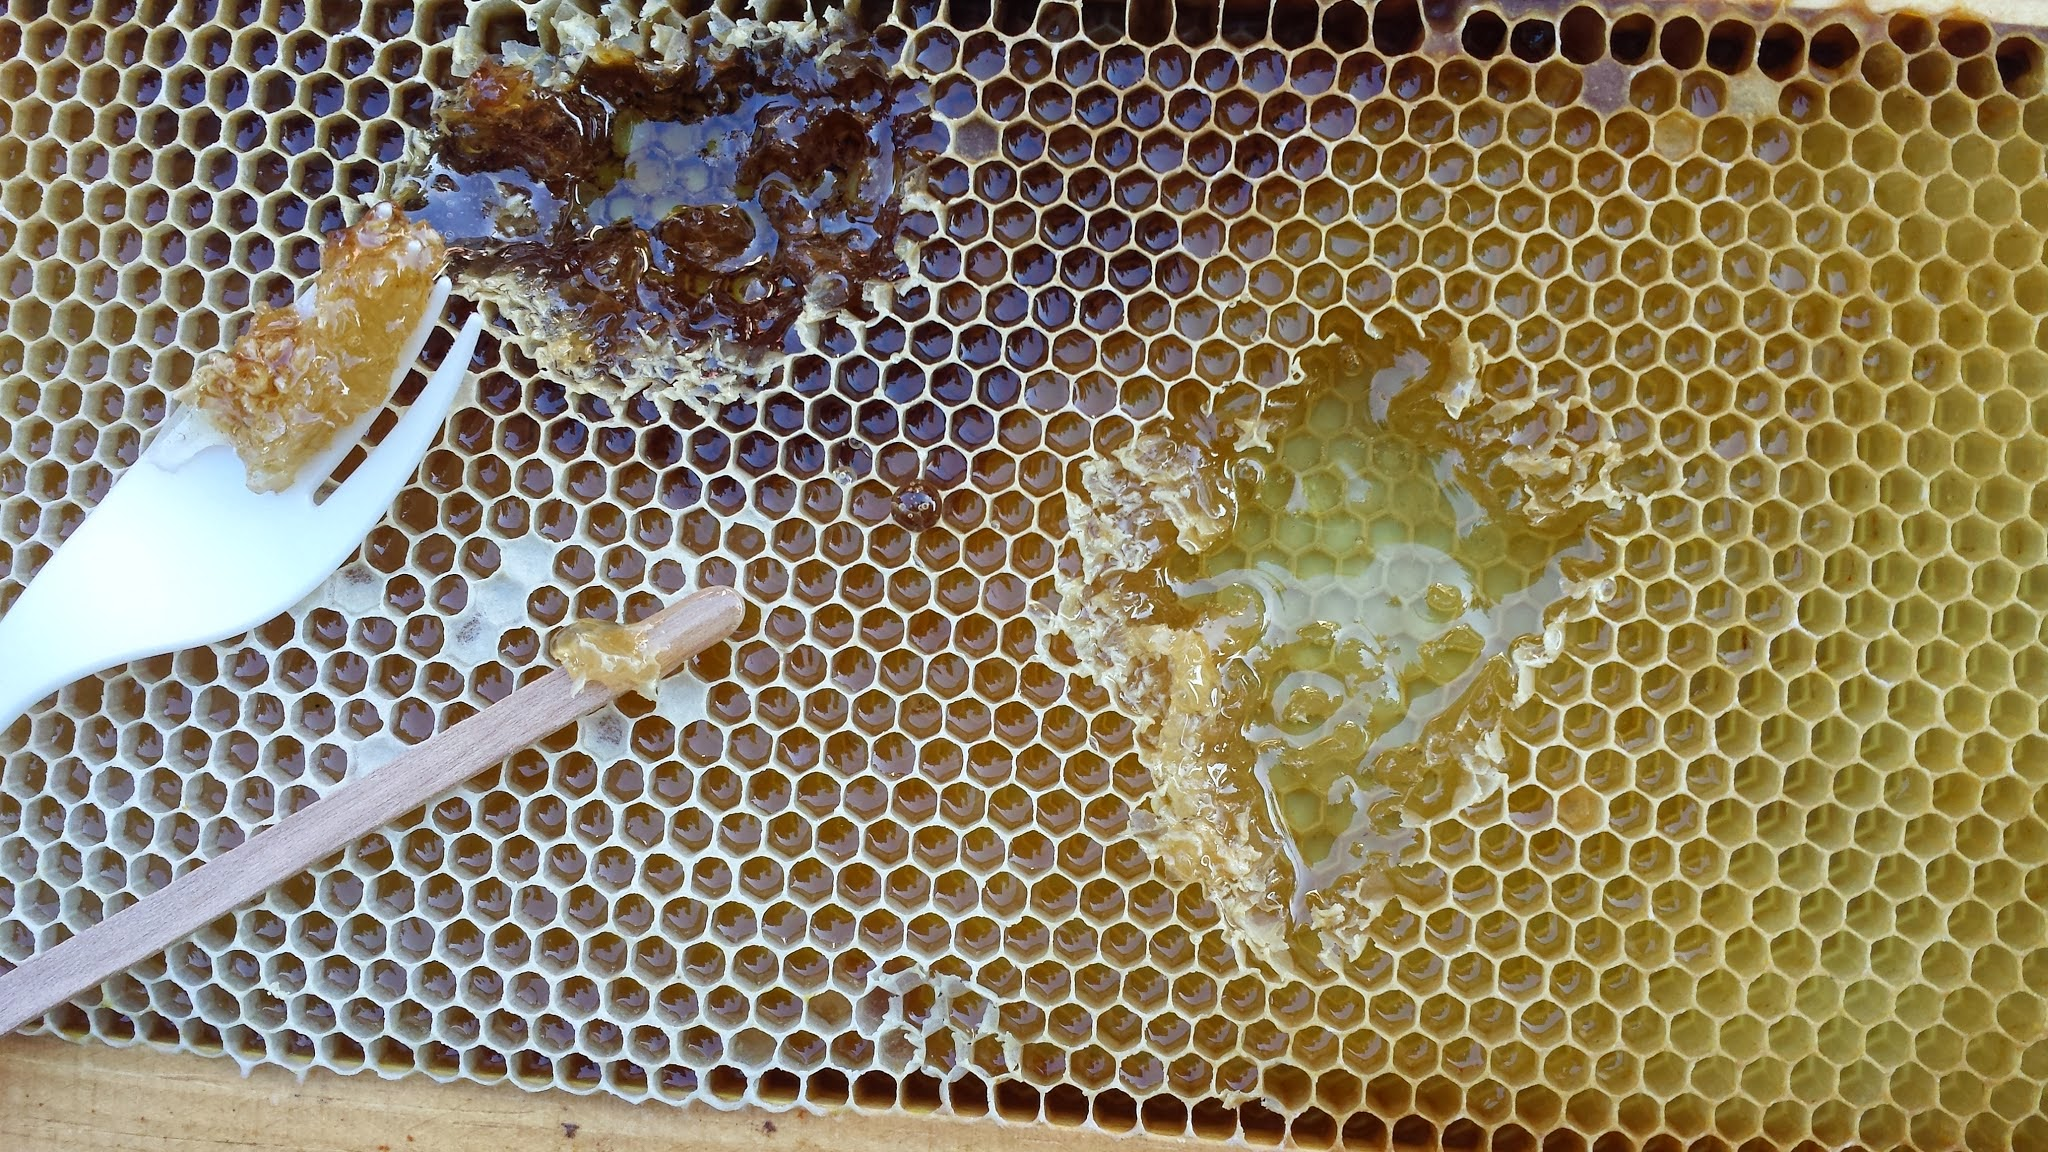 Different colors of honey from various flowers